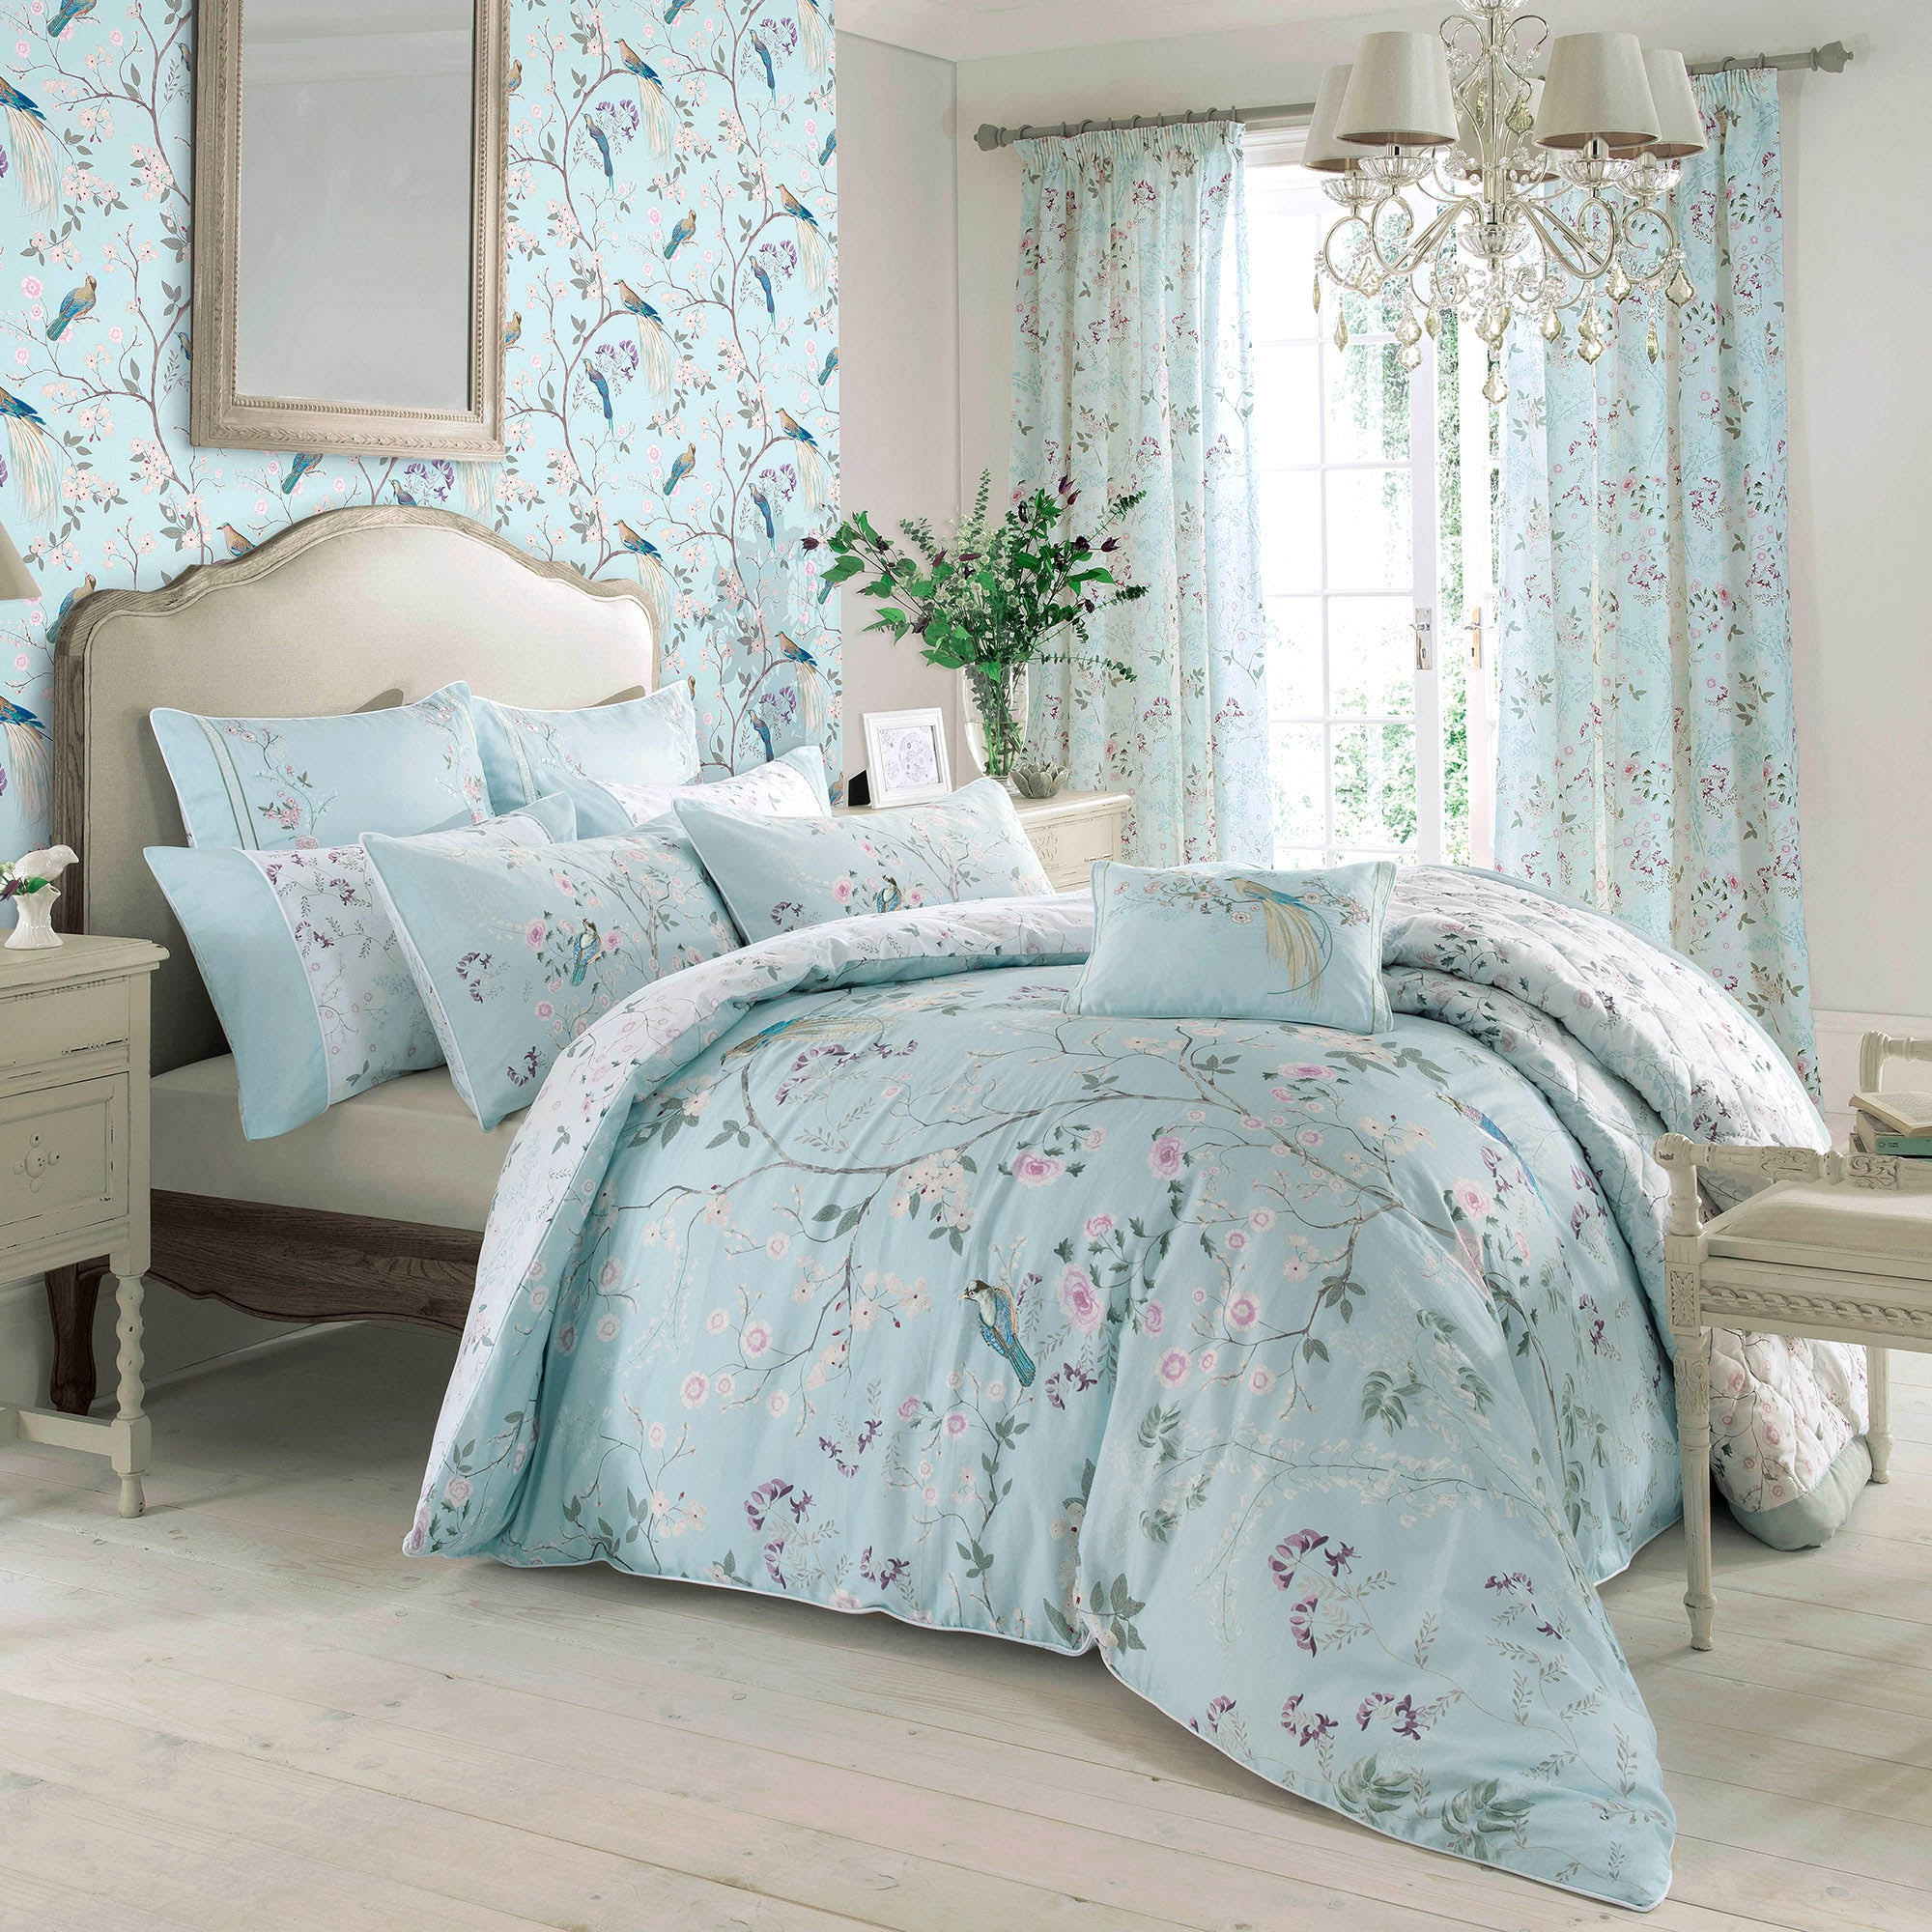 Milf also 446 moreover 4846 besides Dorma Duck Egg Maiya Collection Duvet Cover 408624 as well 3137. on create blue pink bedroom